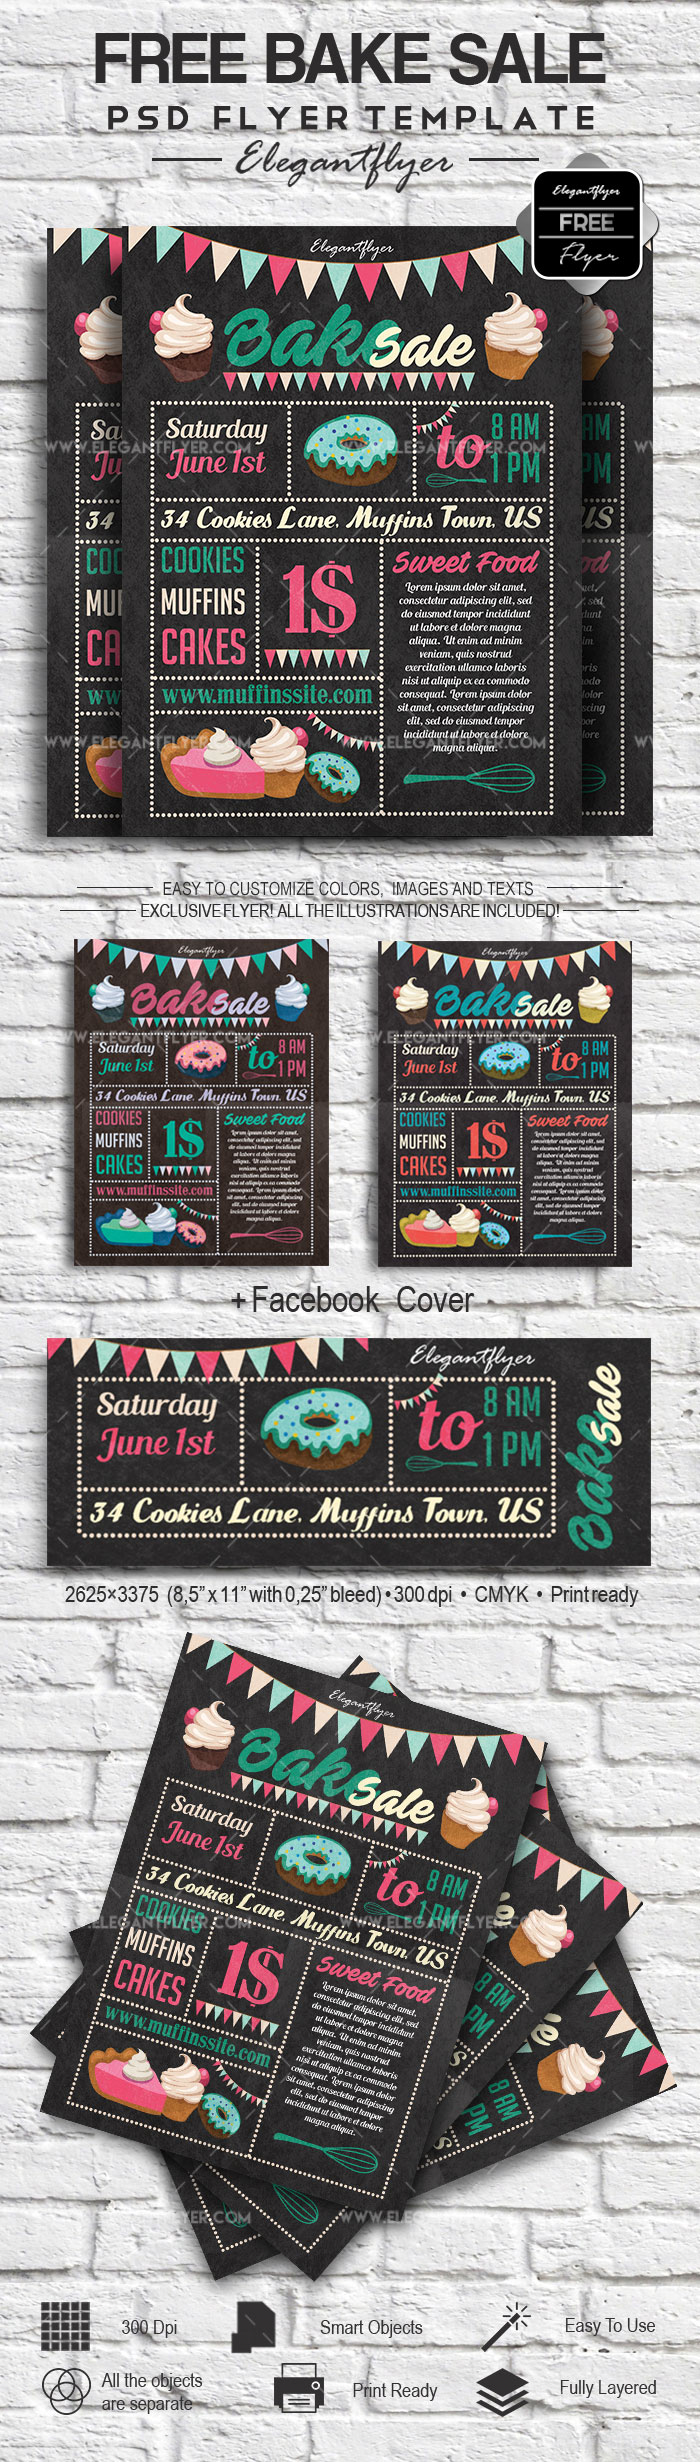 Bake Sale Free Flyer Template